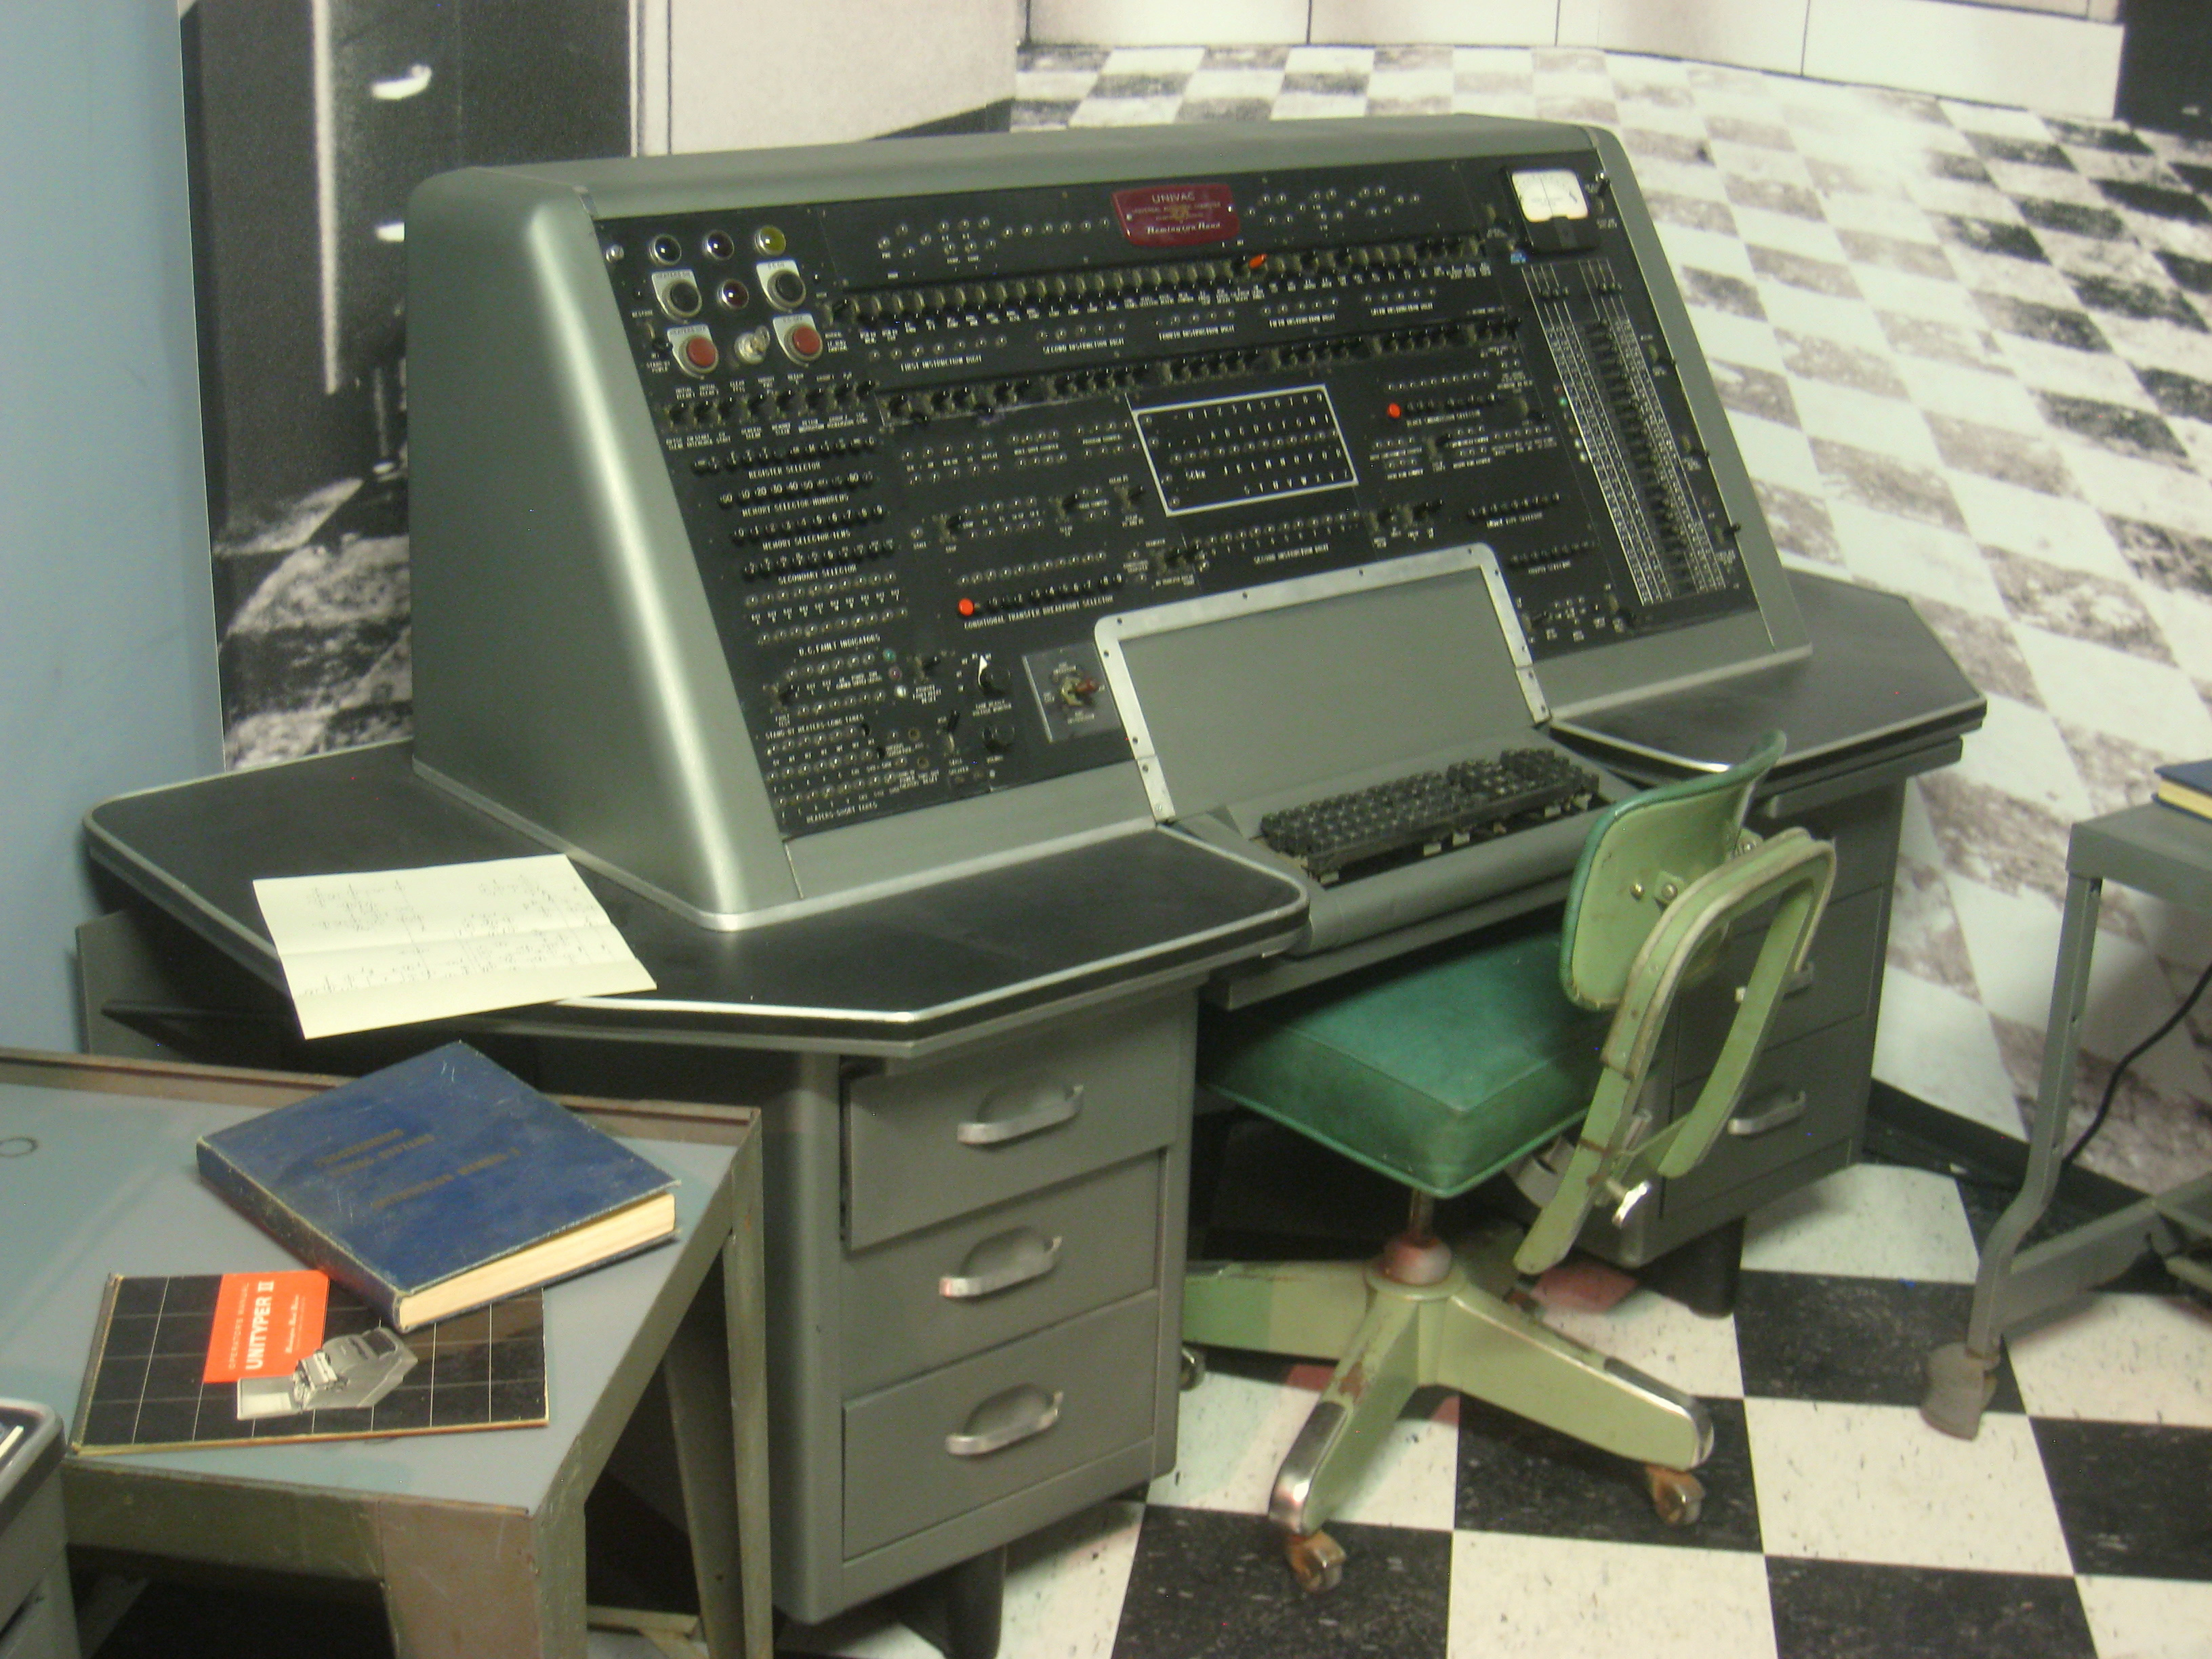 Console of a UNIVAC computer